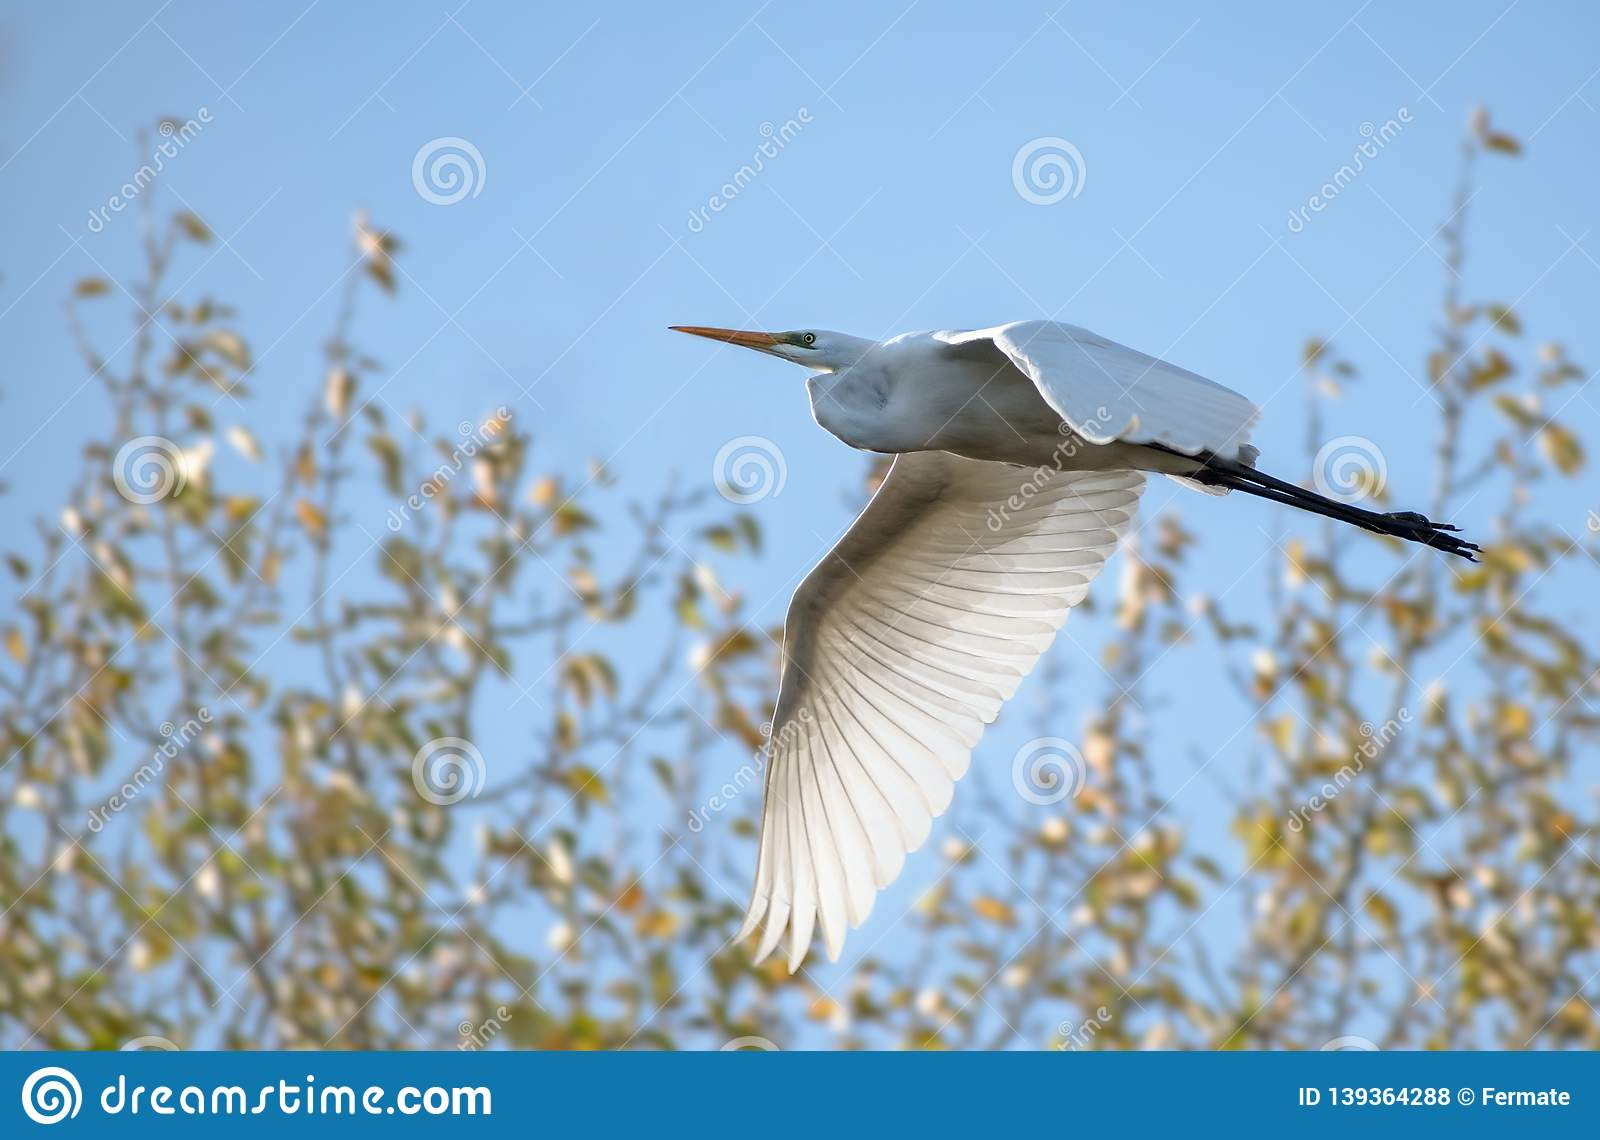 Great egret Ardea alba, large white heron bird in flight in front of bushes against the blue sky, copy space